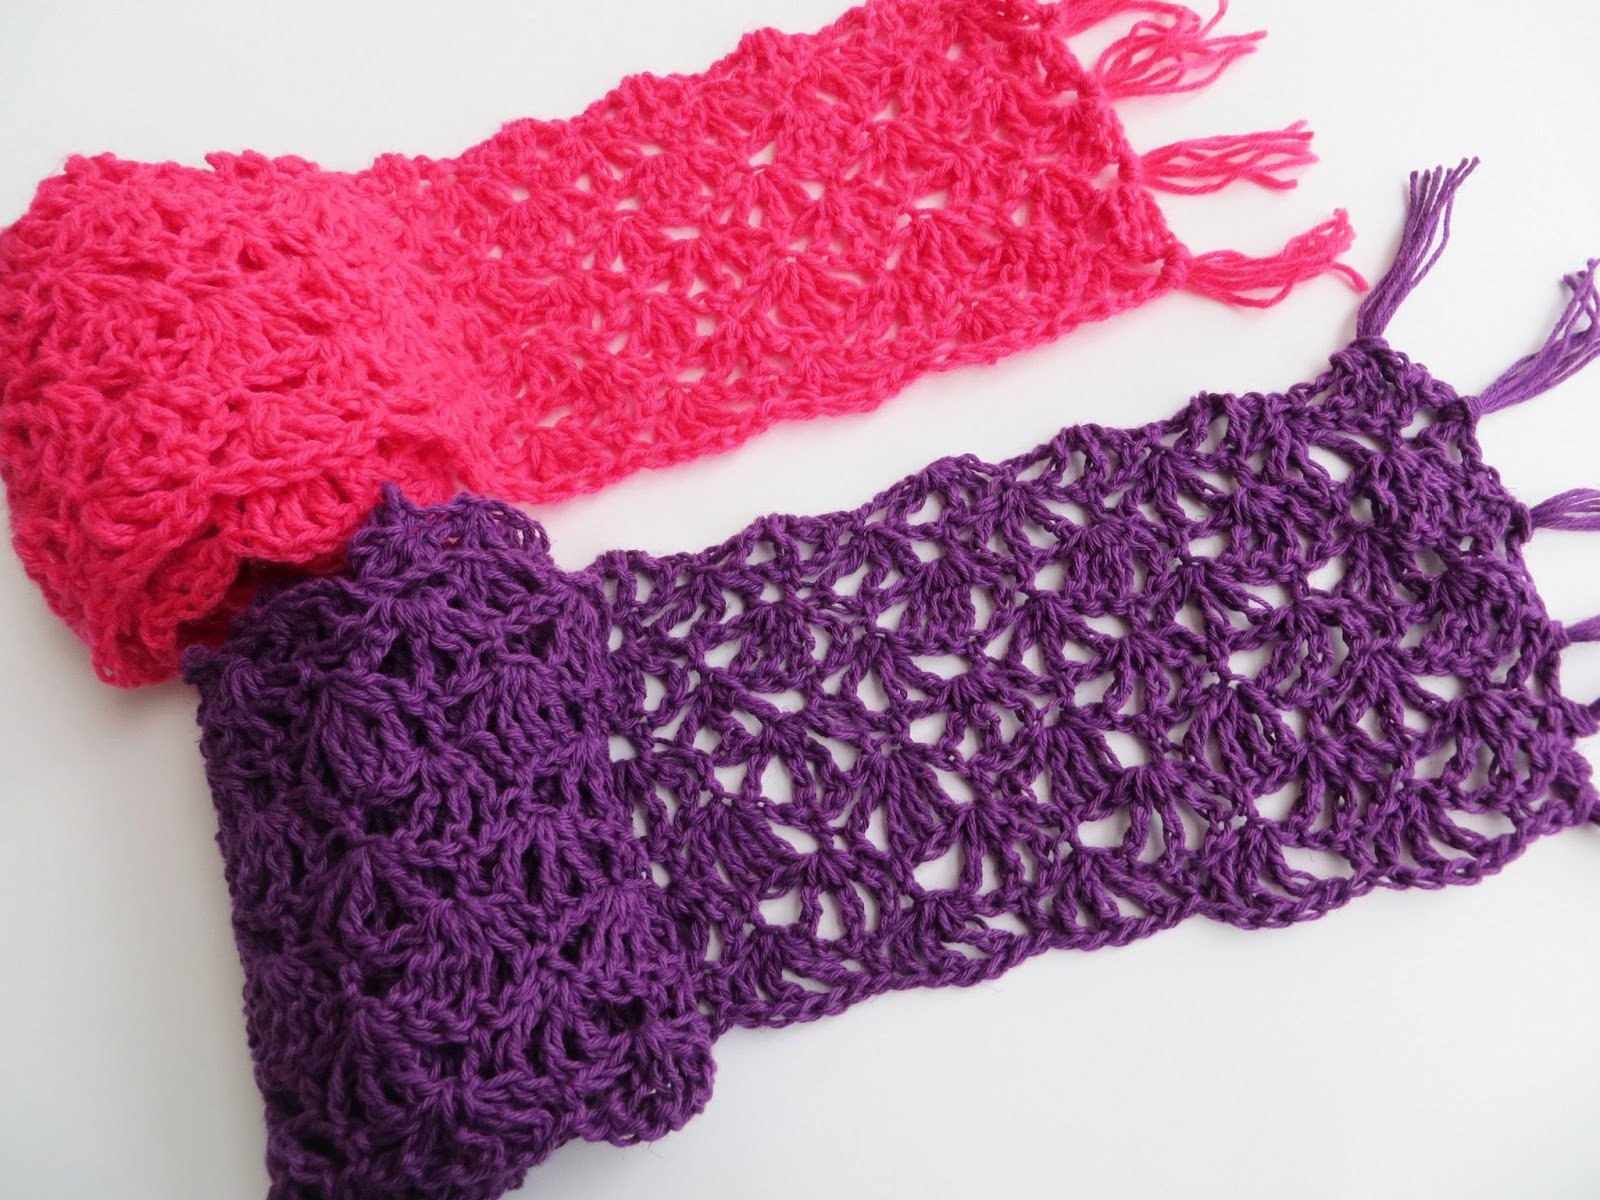 Lovely Crochet Dreamz Alana Lacy Scarf Free Crochet Pattern Lacy Crochet Stitches Of New 49 Photos Lacy Crochet Stitches